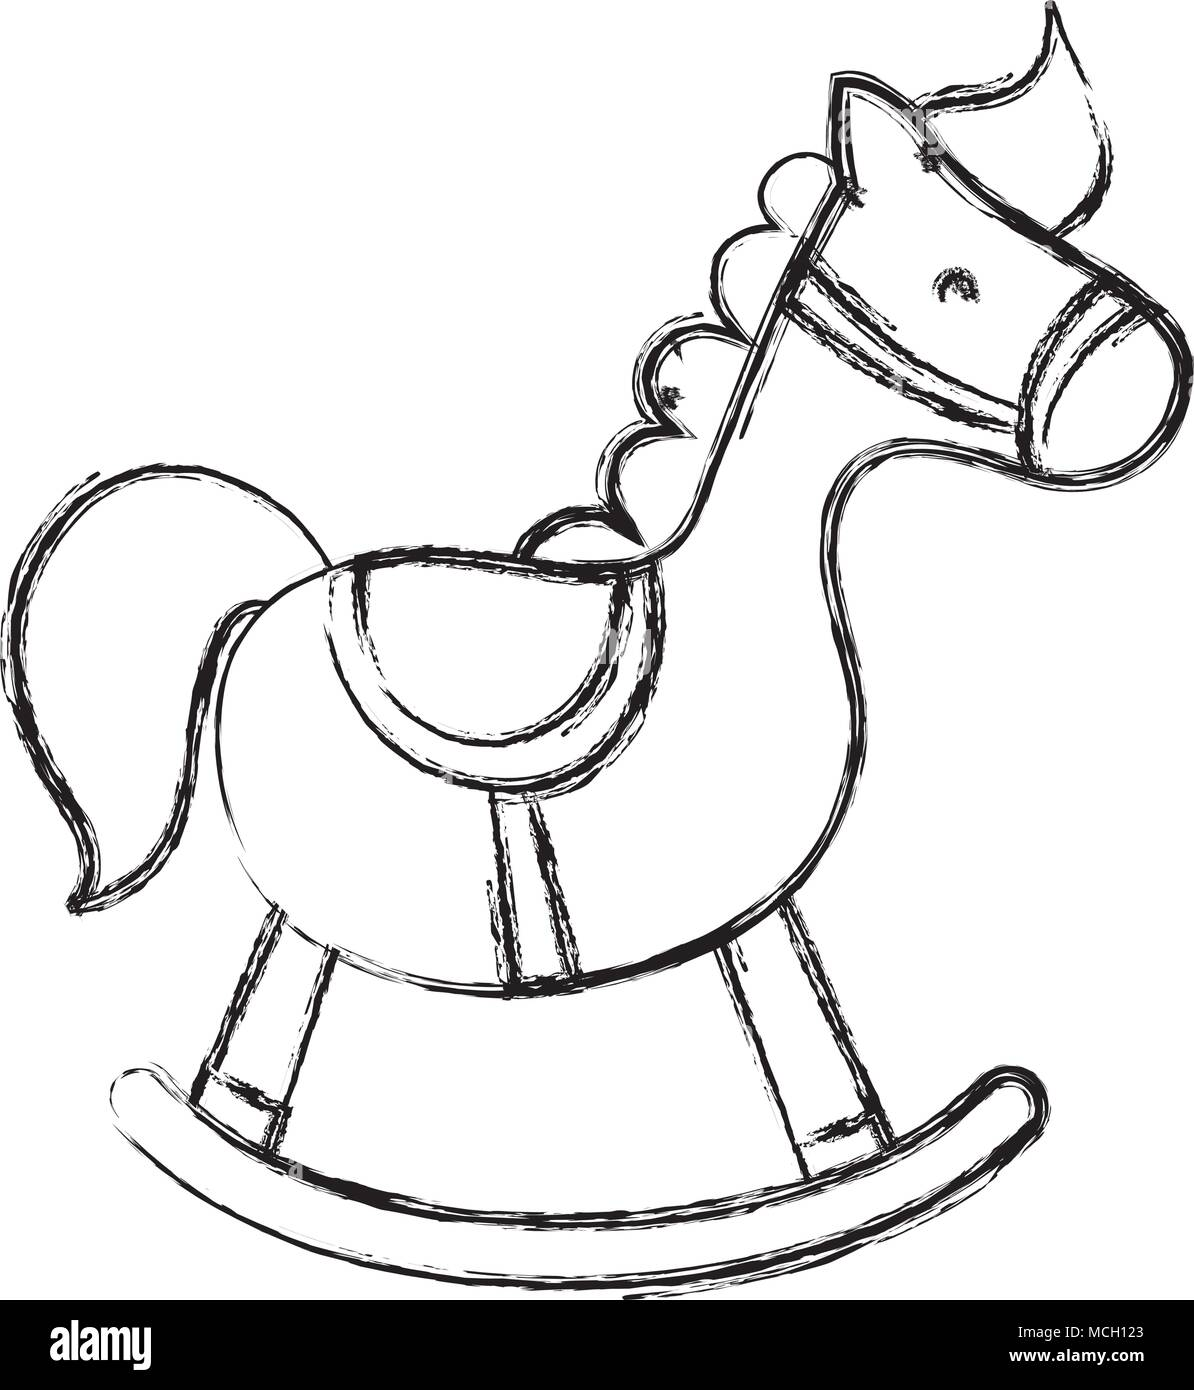 Grunge Wooden Rocking Horse Play Toy Vector Illustration Stock Vector Image Art Alamy